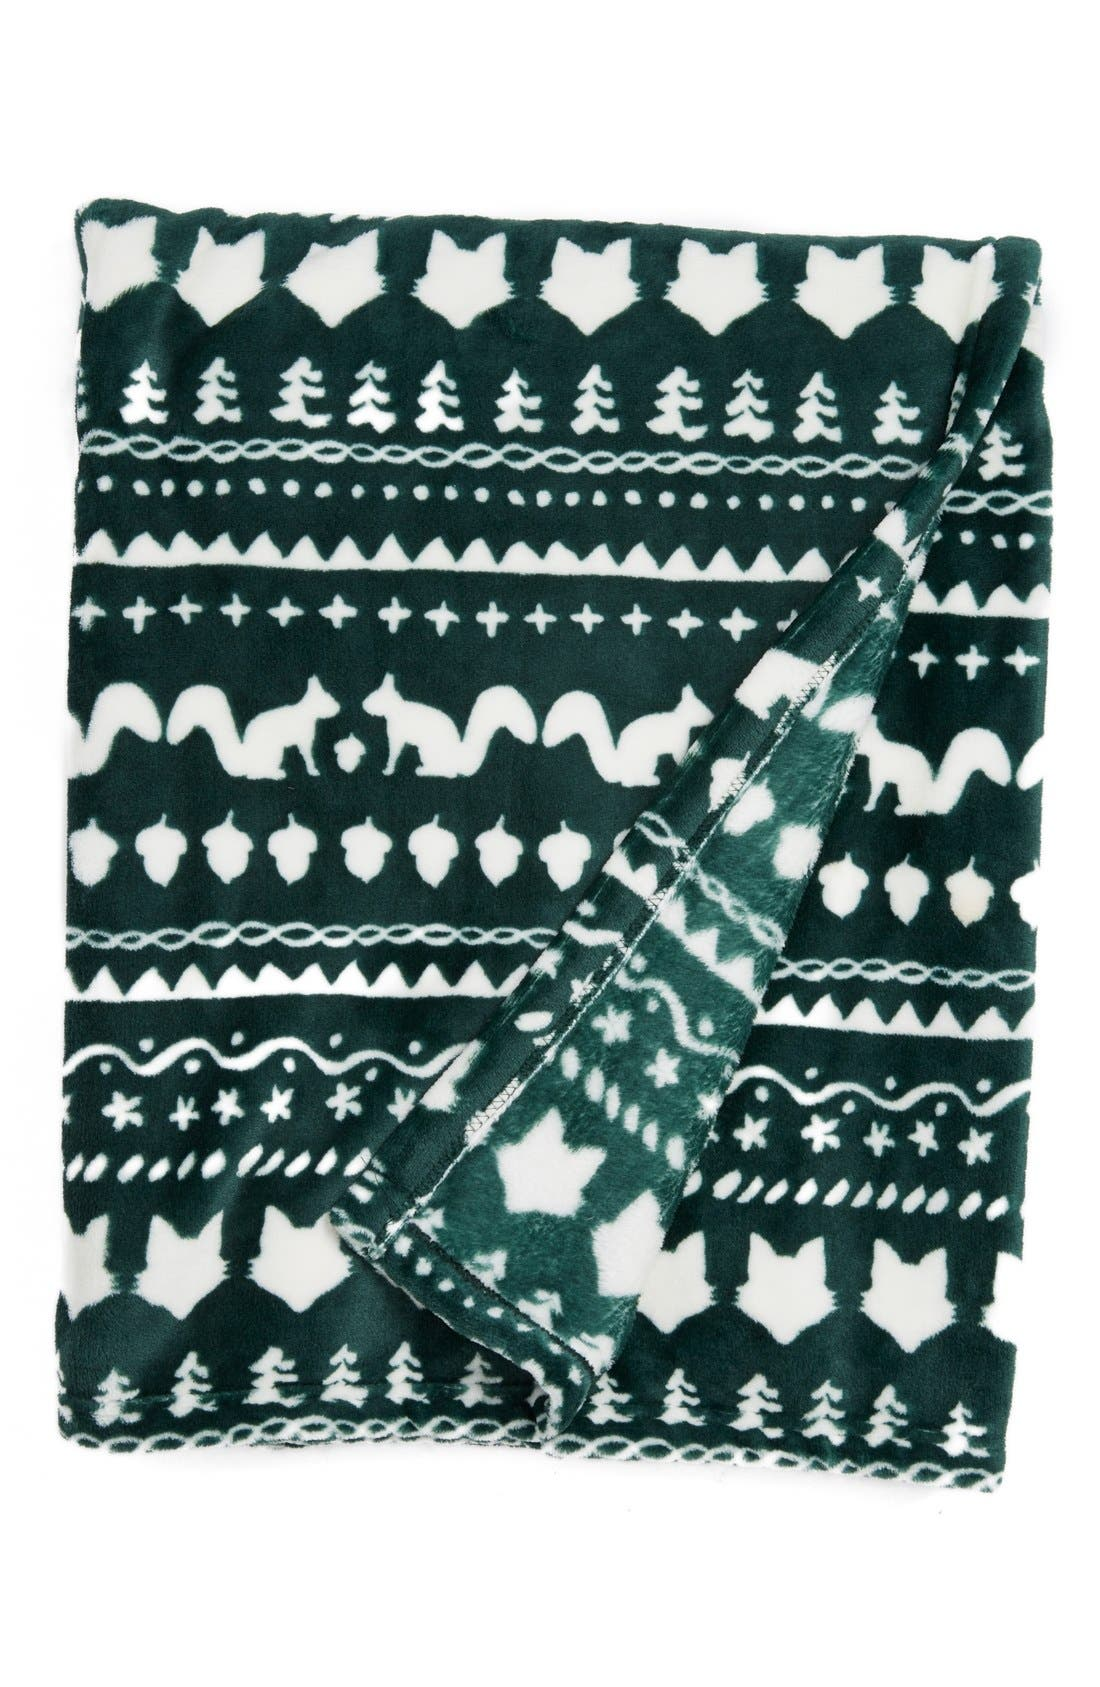 Nordstrom at Home Fair Isle Plush Fleece Throw Blanket | Nordstrom